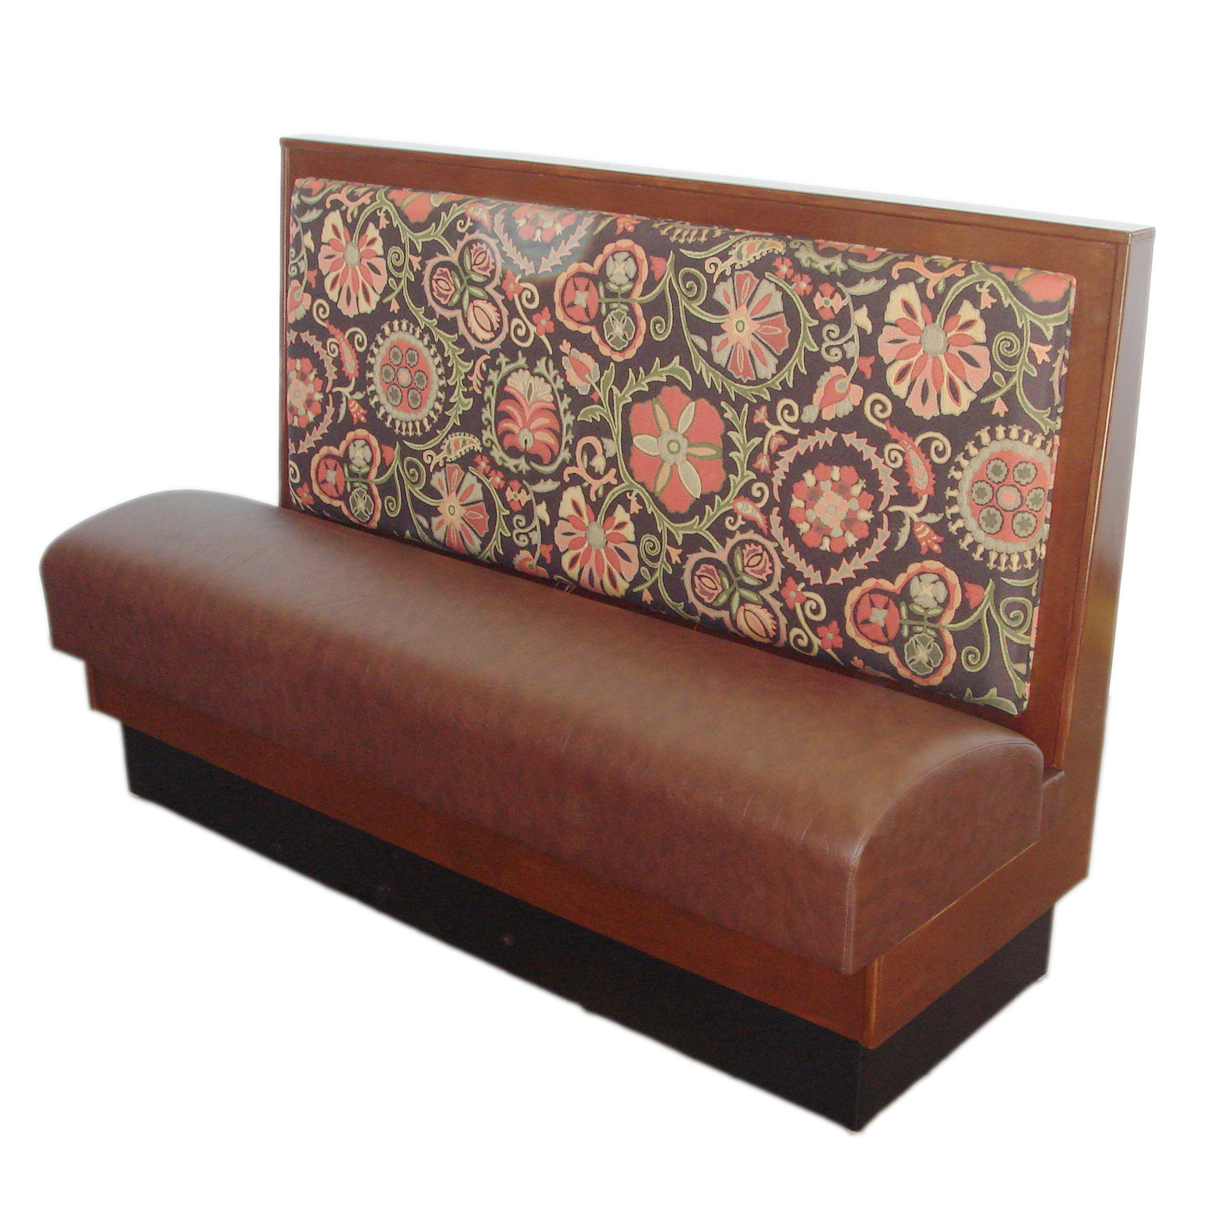 AAA Furniture Wholesale NO42D-DUCE GR4 booth